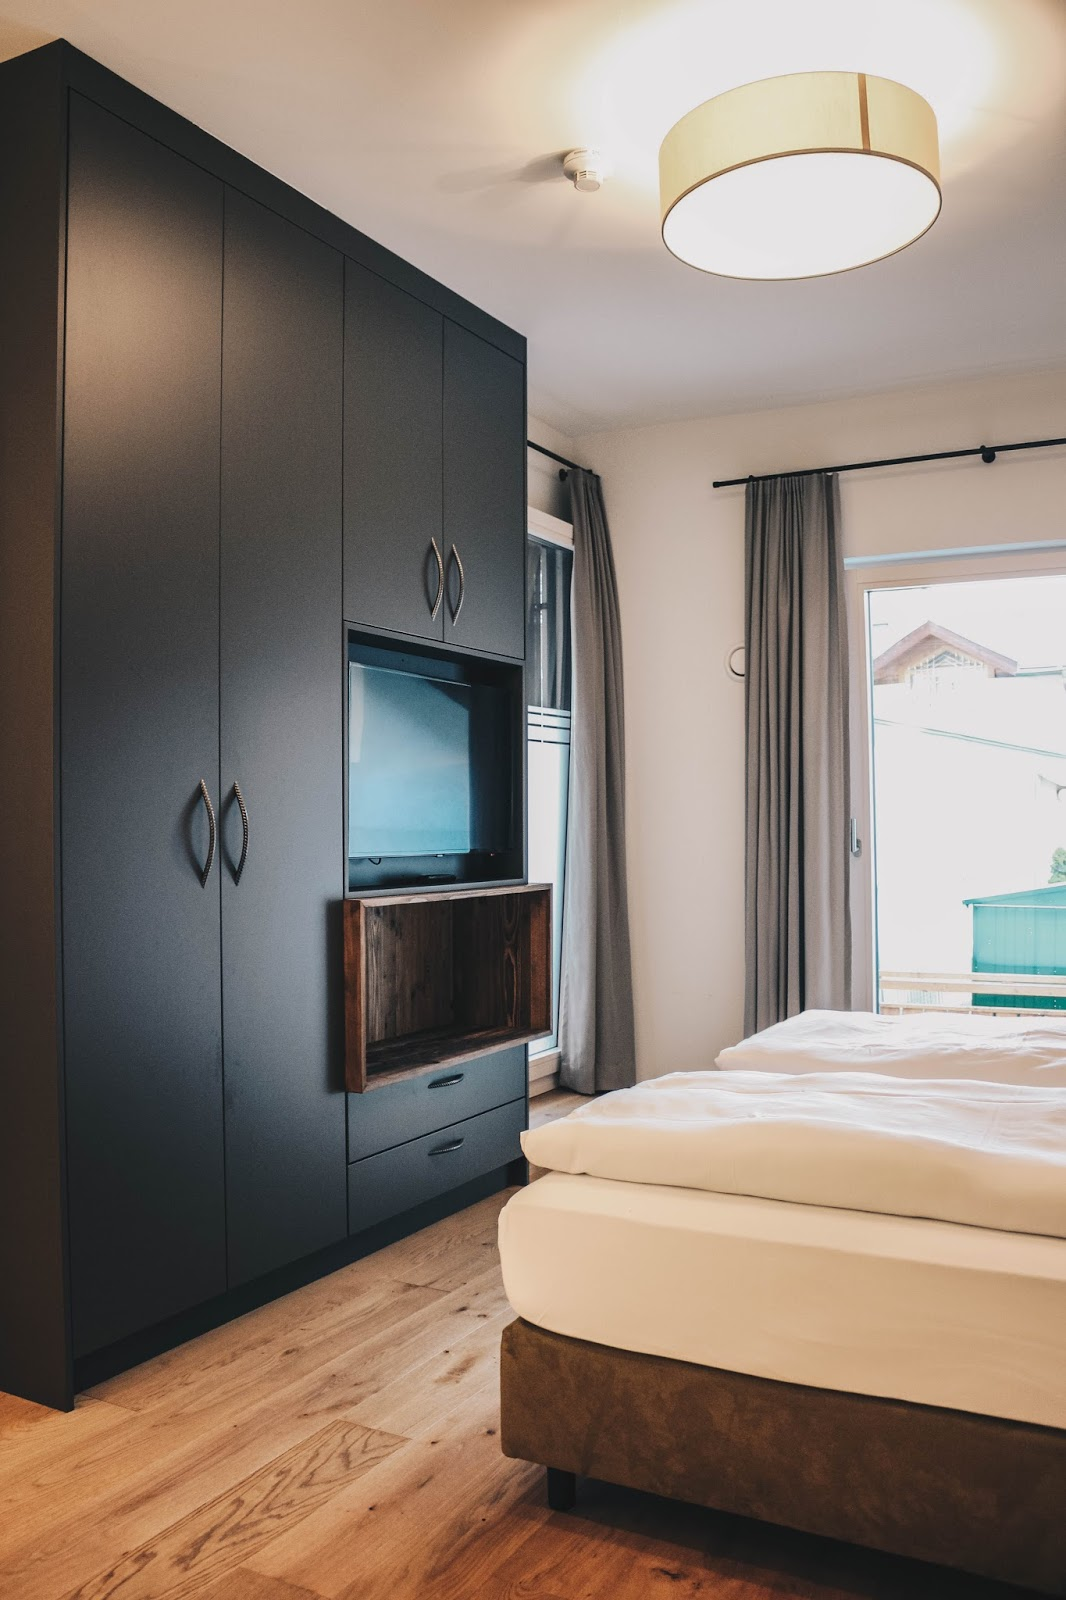 HOTEL - TWO TIMEZ BOTIQUE HOTEL ZELL AM SEE | Fashion Whisper ...